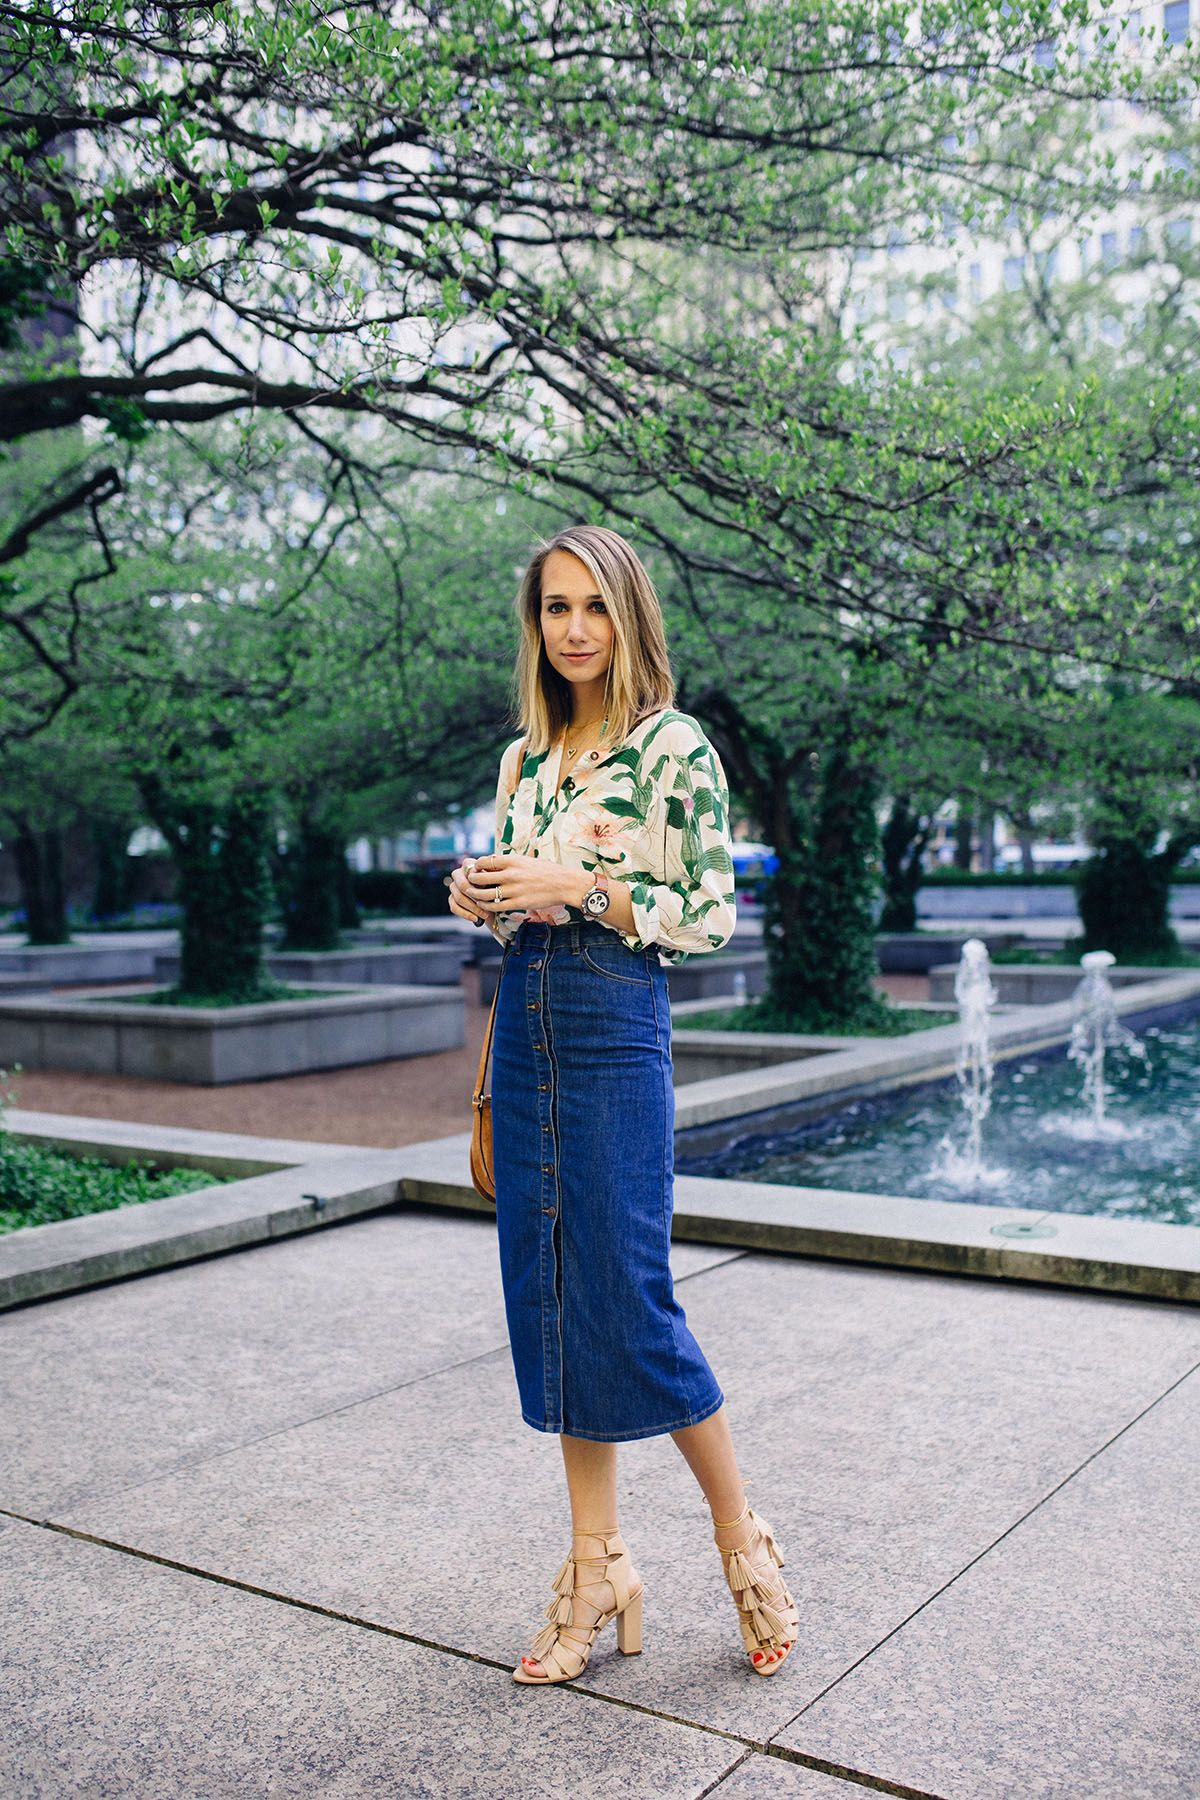 A Different Way to Wear Denim   Denim pencil skirt outfit